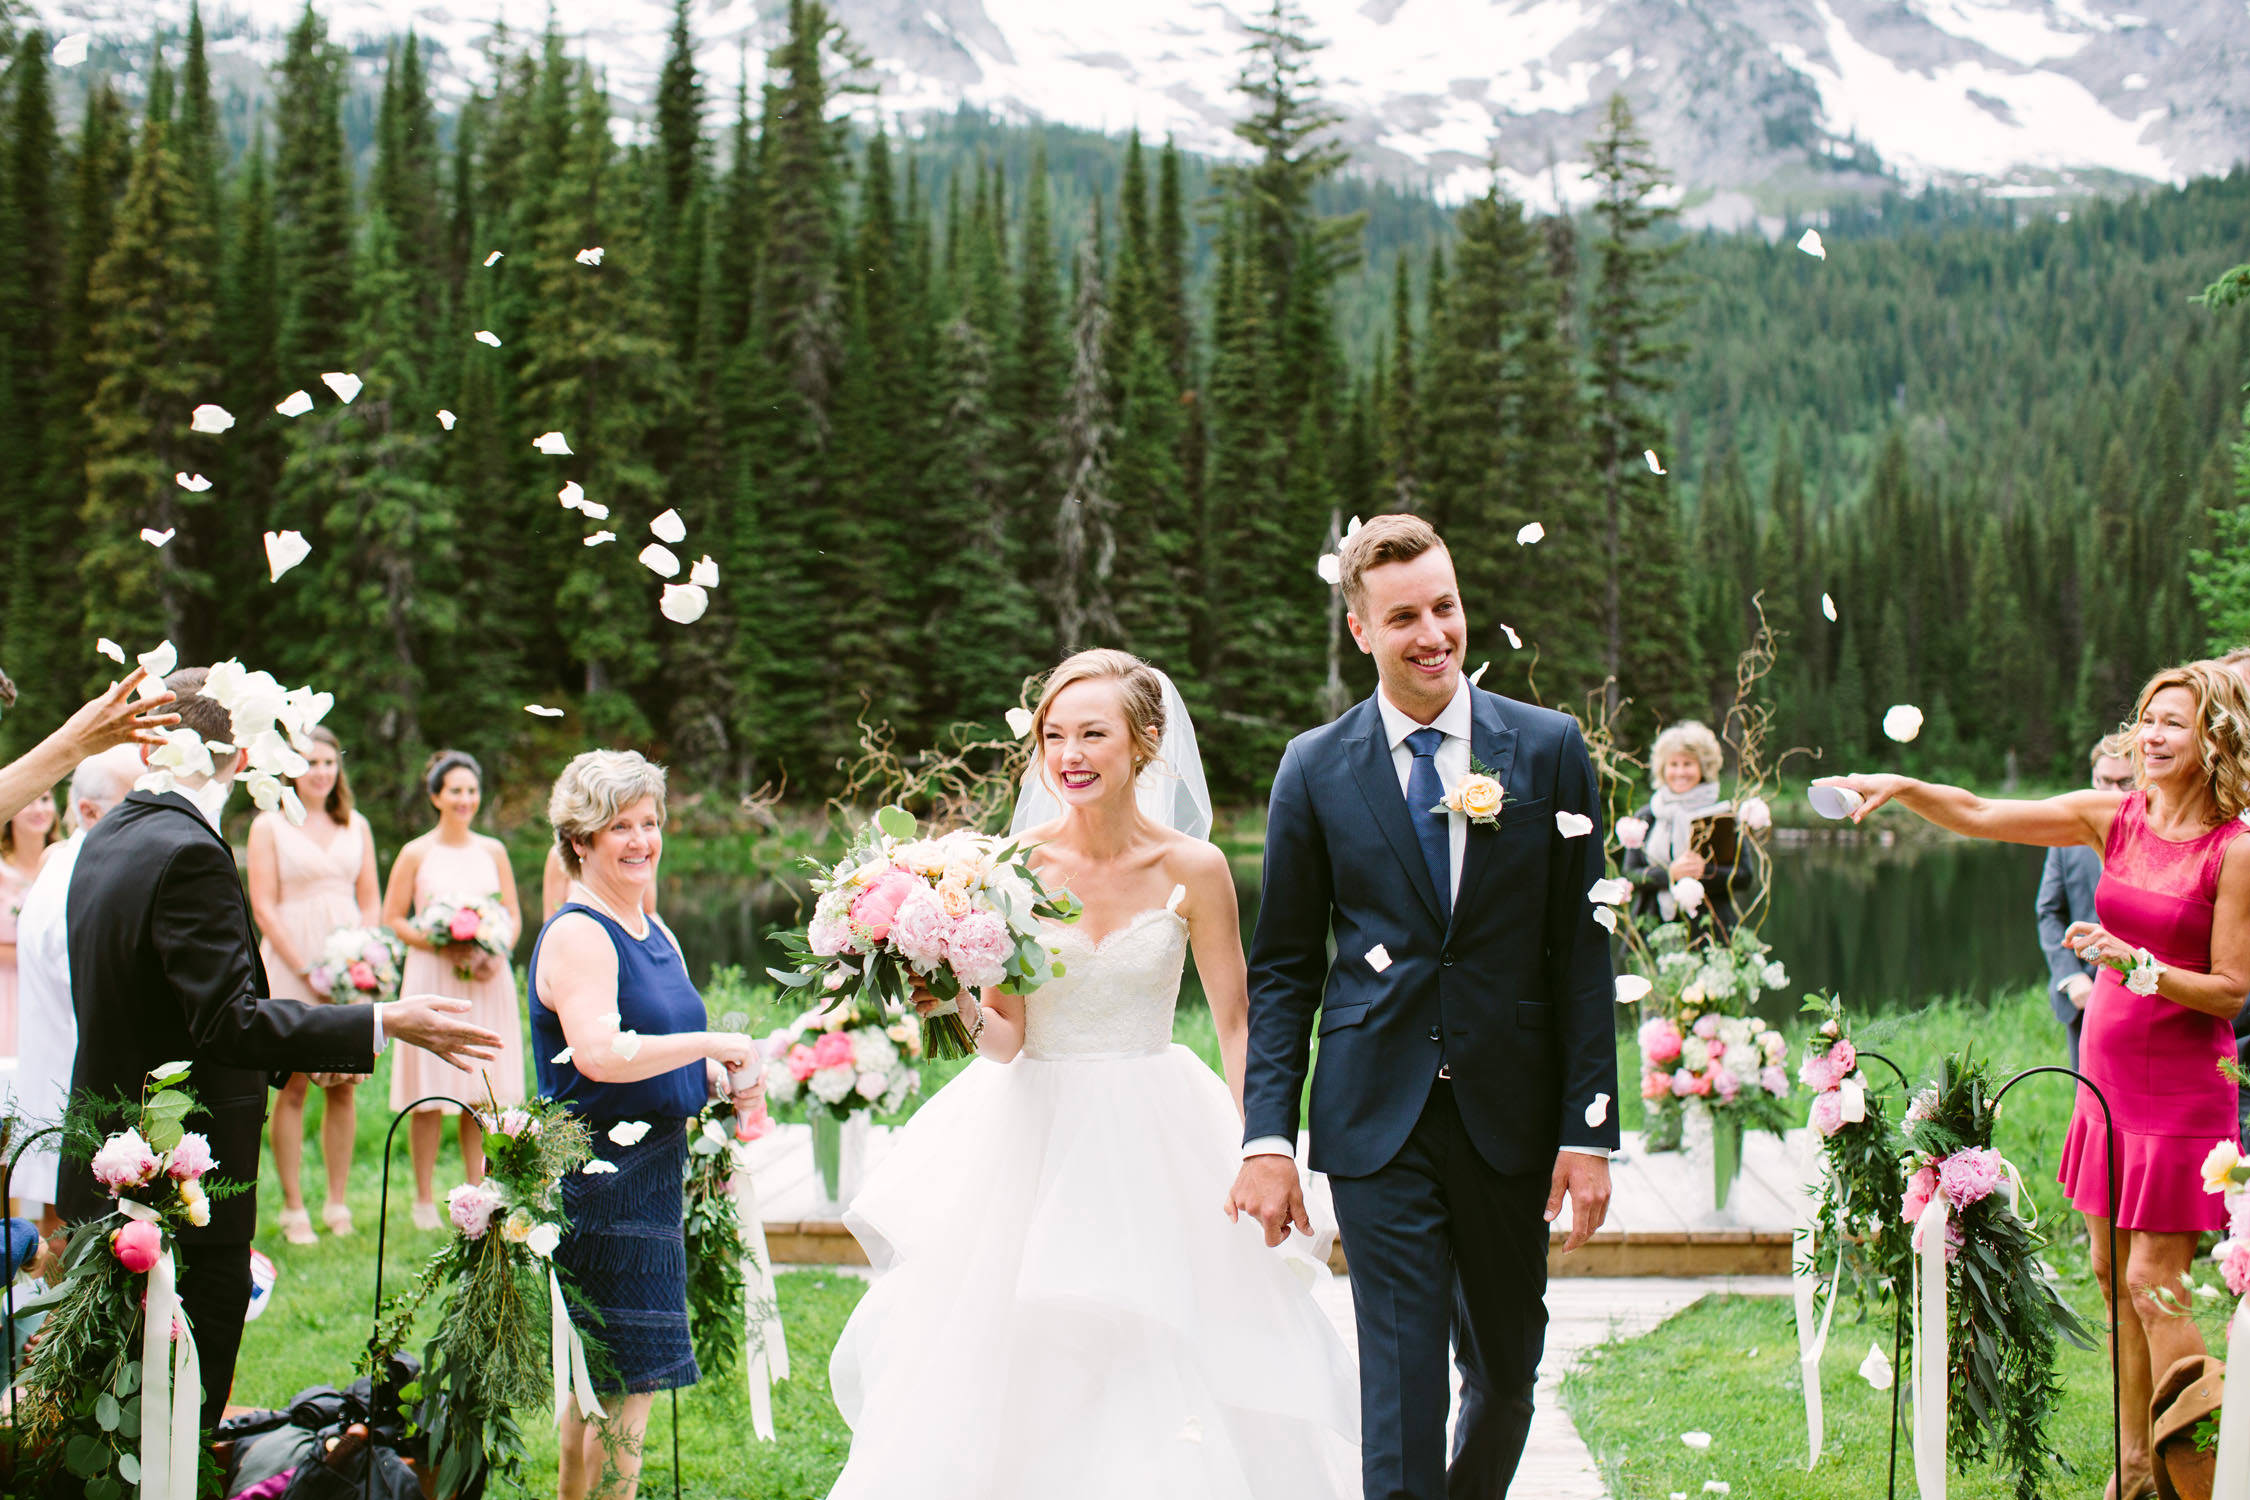 Calgary_wedding_photographer004.jpg